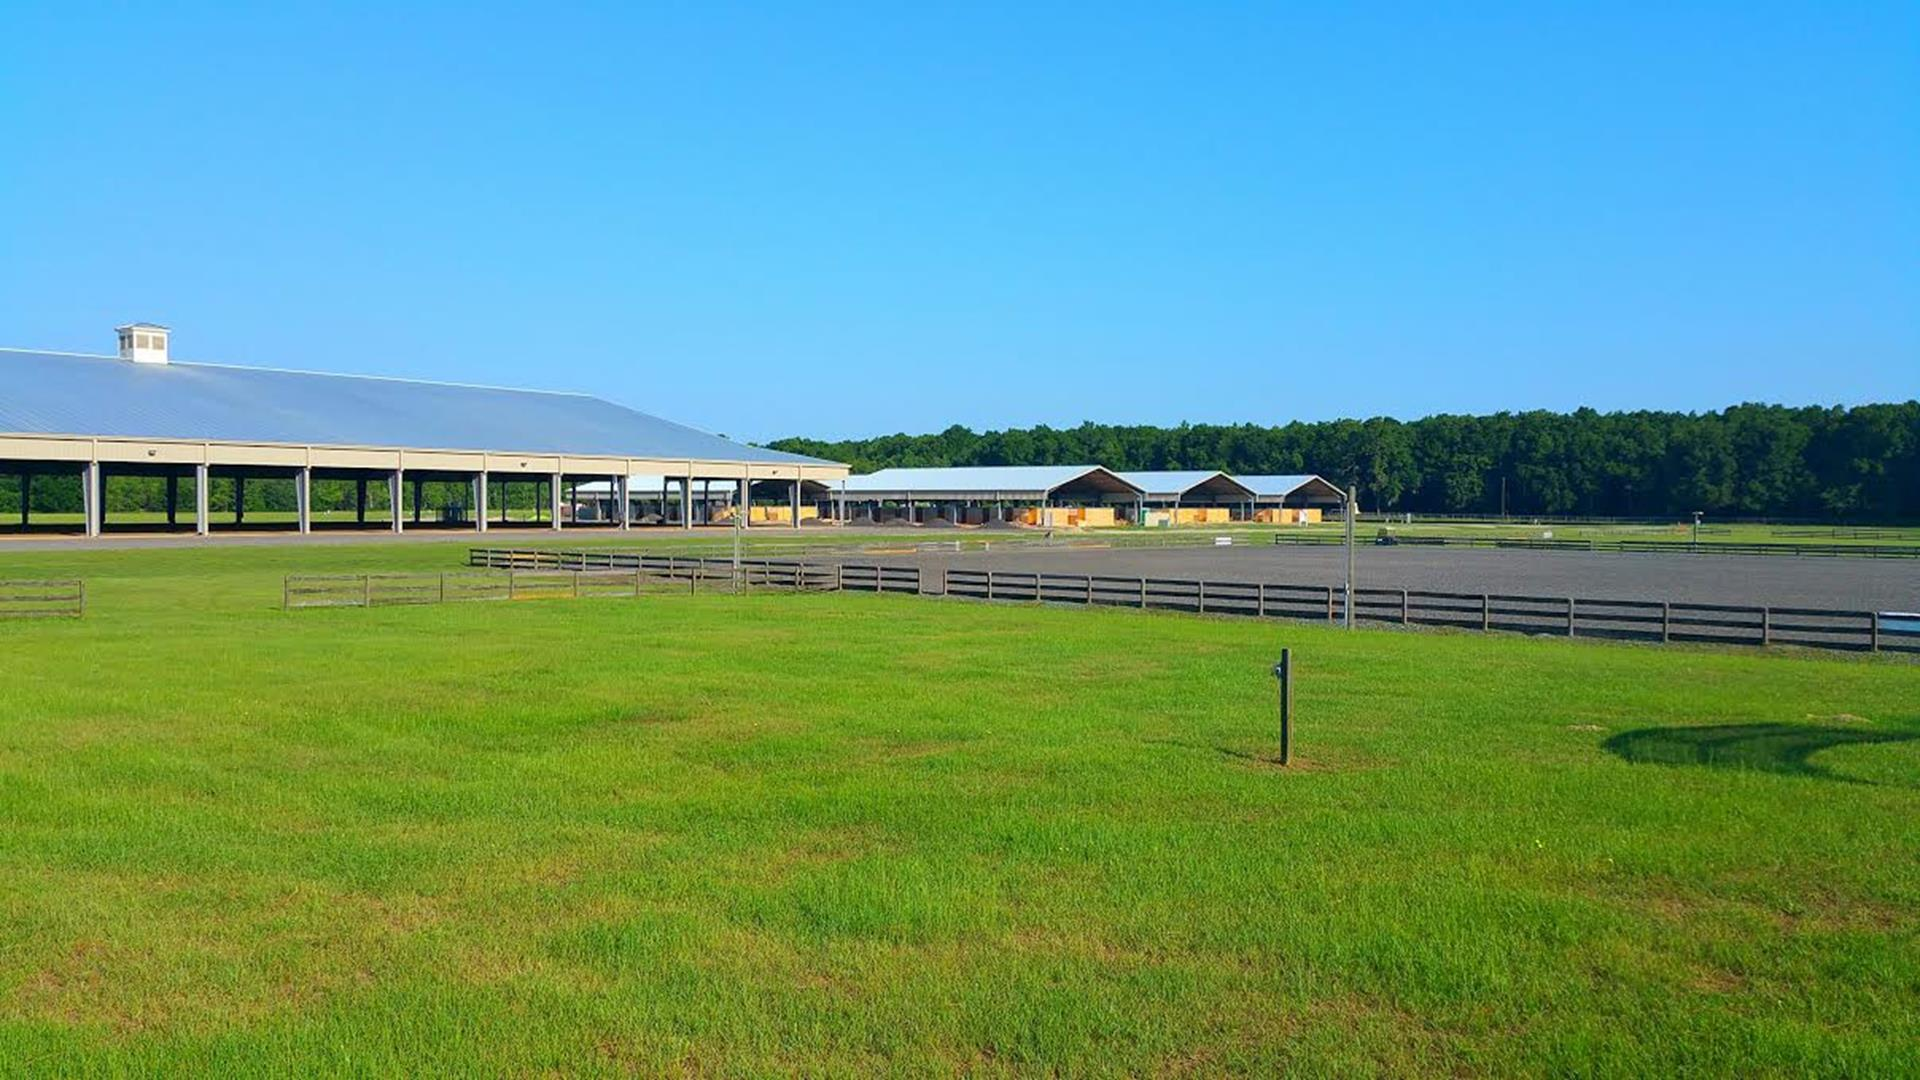 8 Of The Best Equestrian Facilities In America Sports